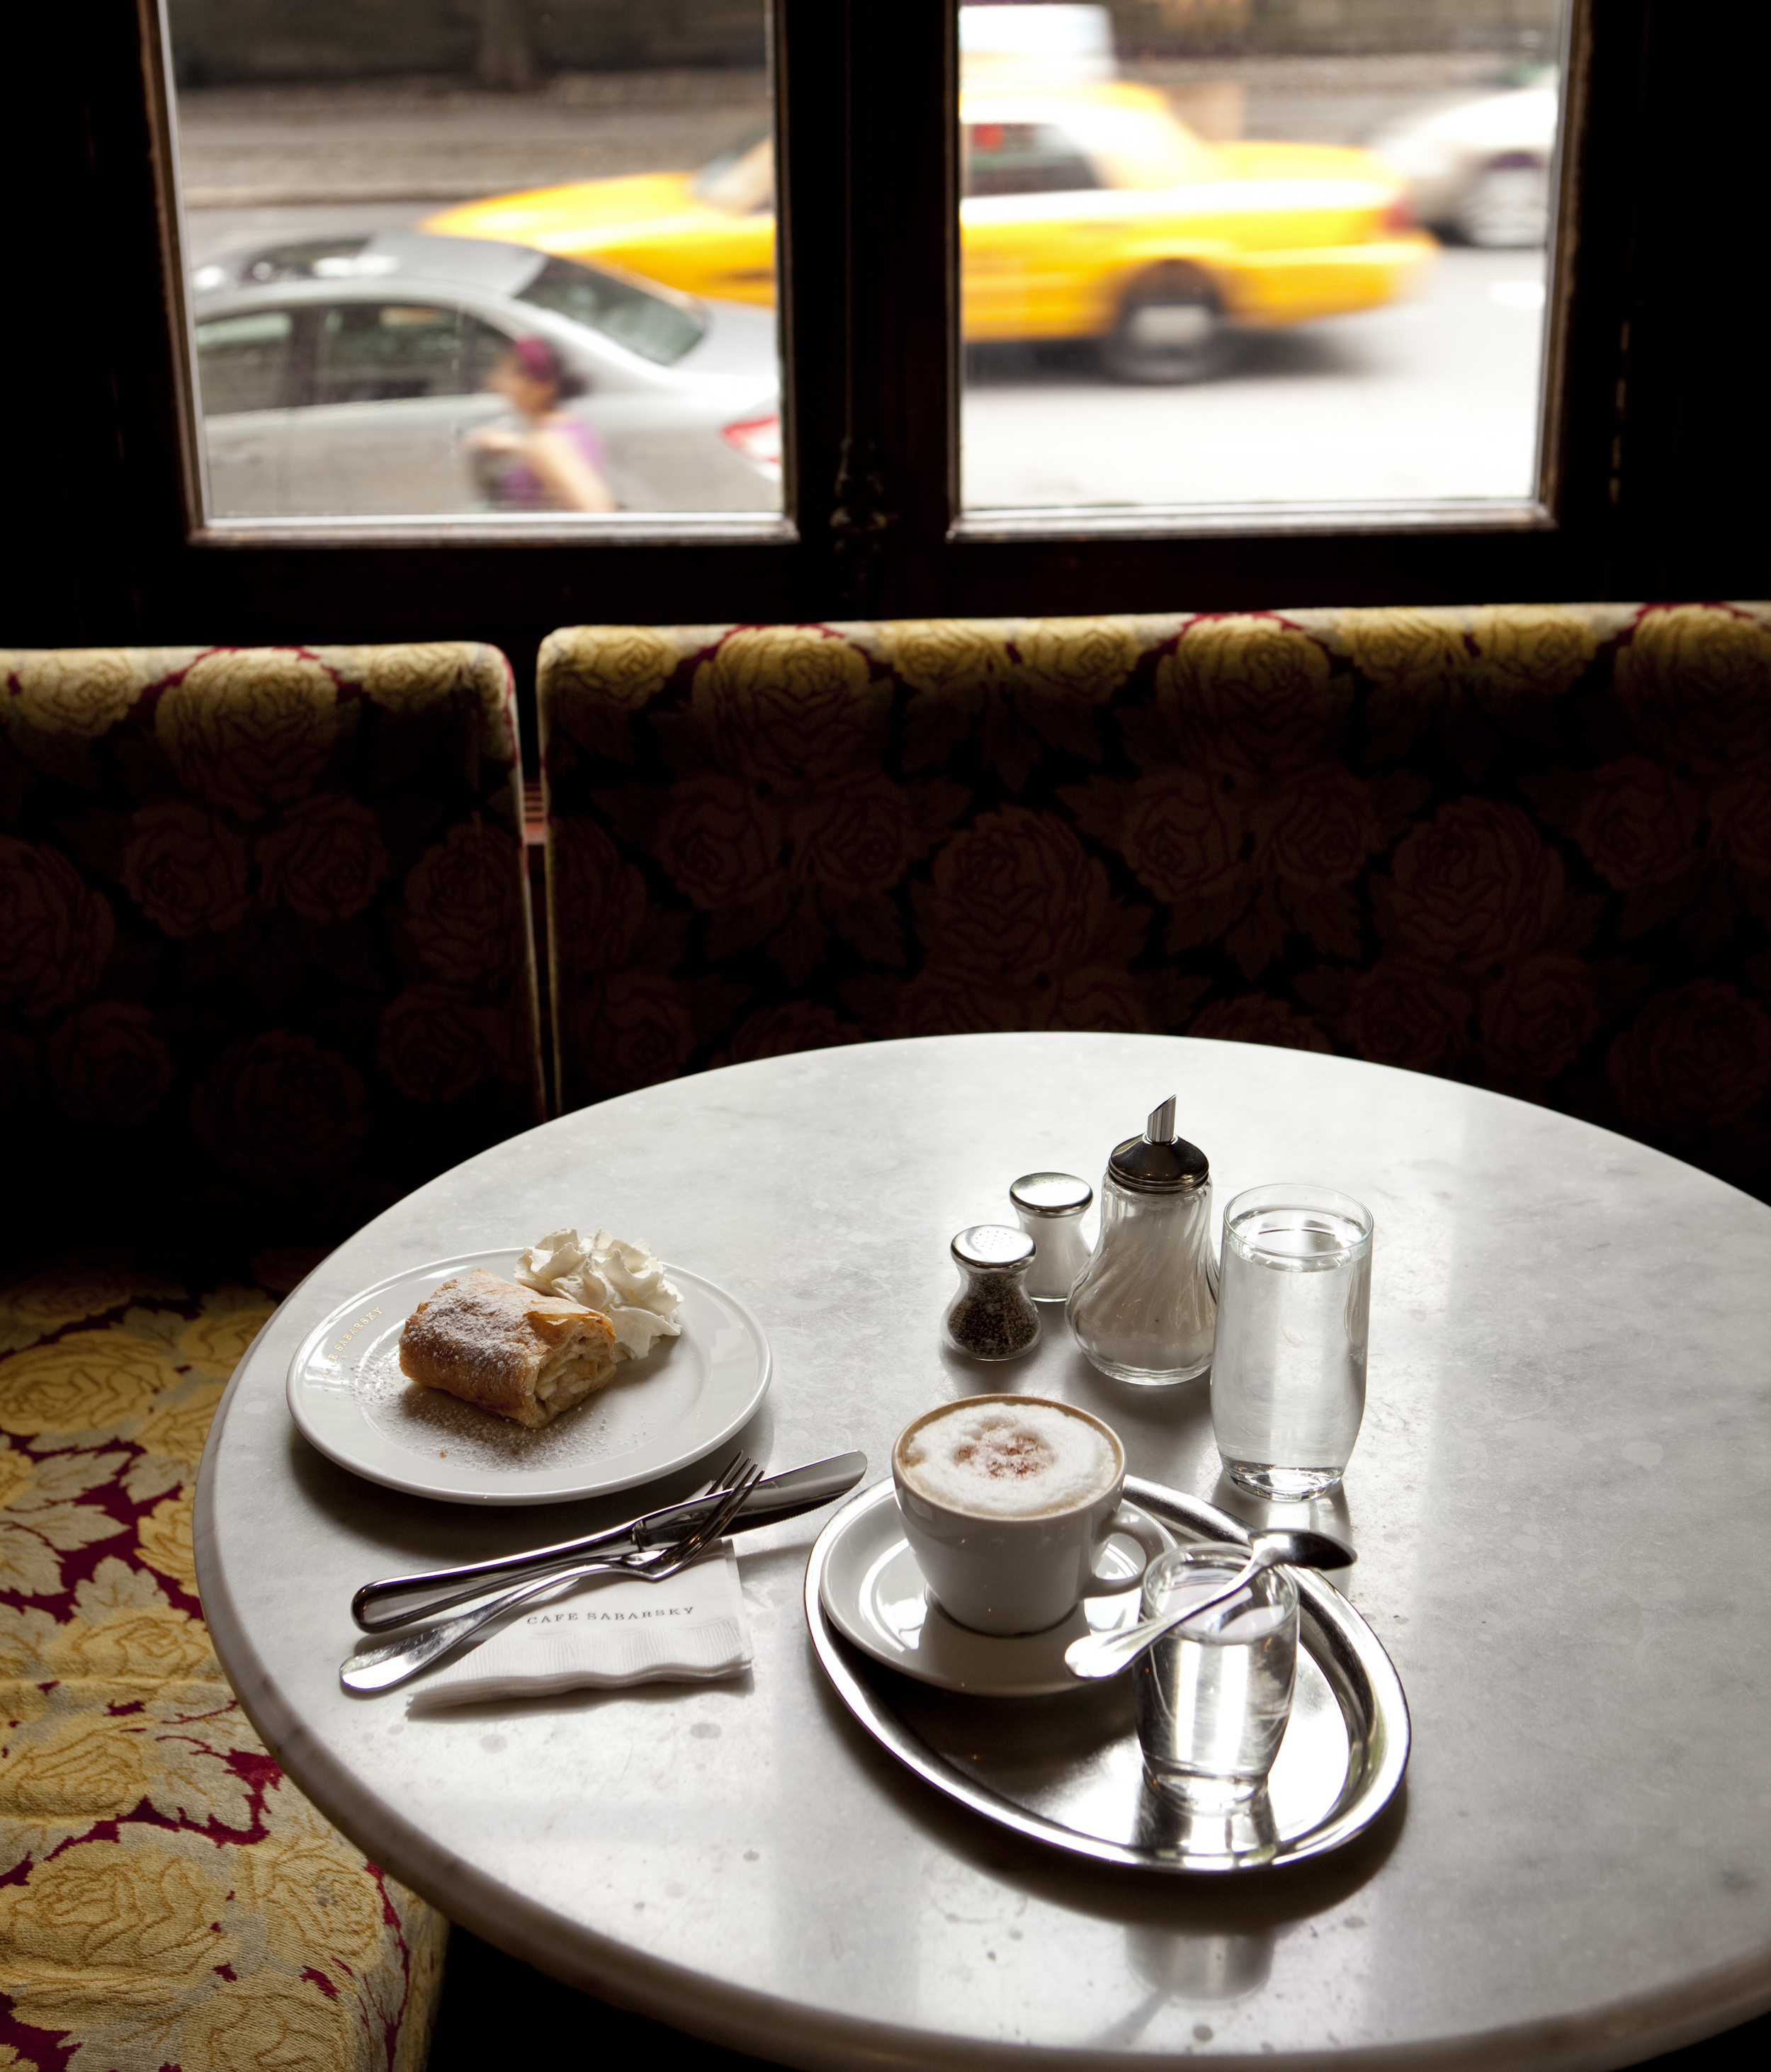 Cafe Sabarsky at the Neue Gallery